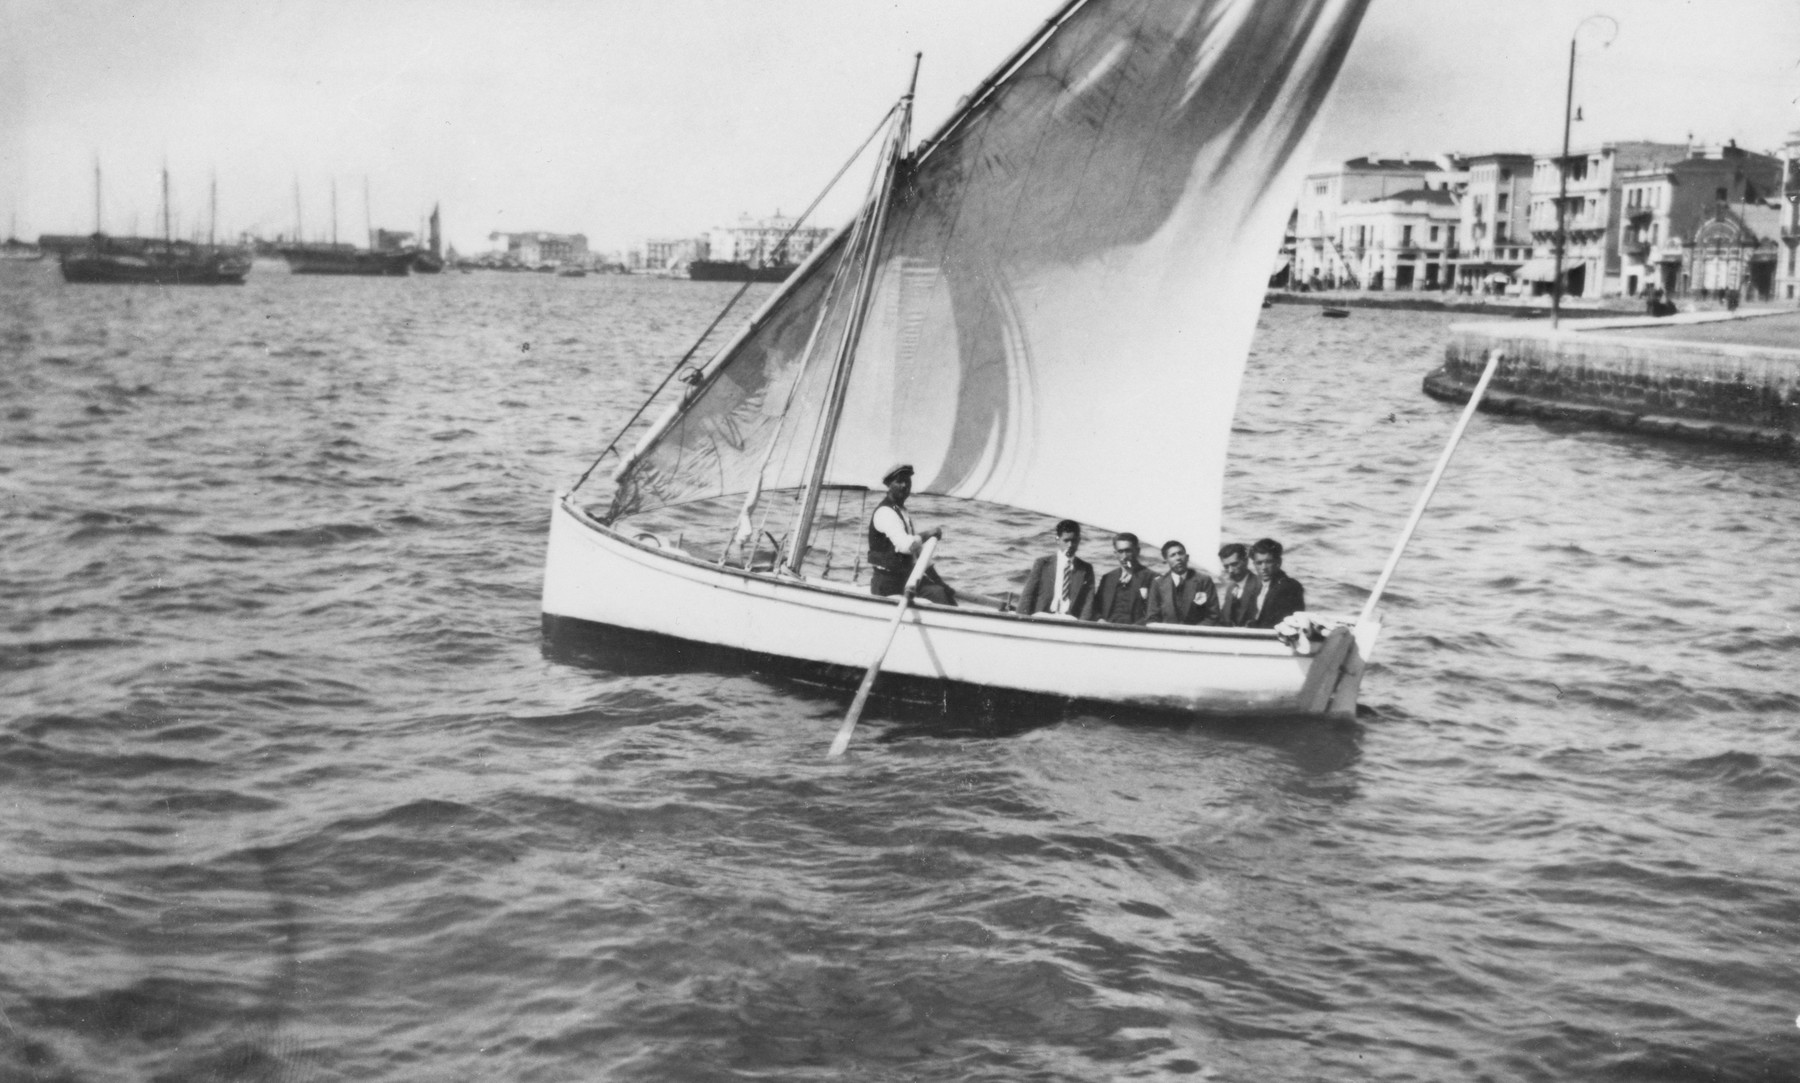 A group of  young Jewish men go for a sail in the harbor of Salonika.